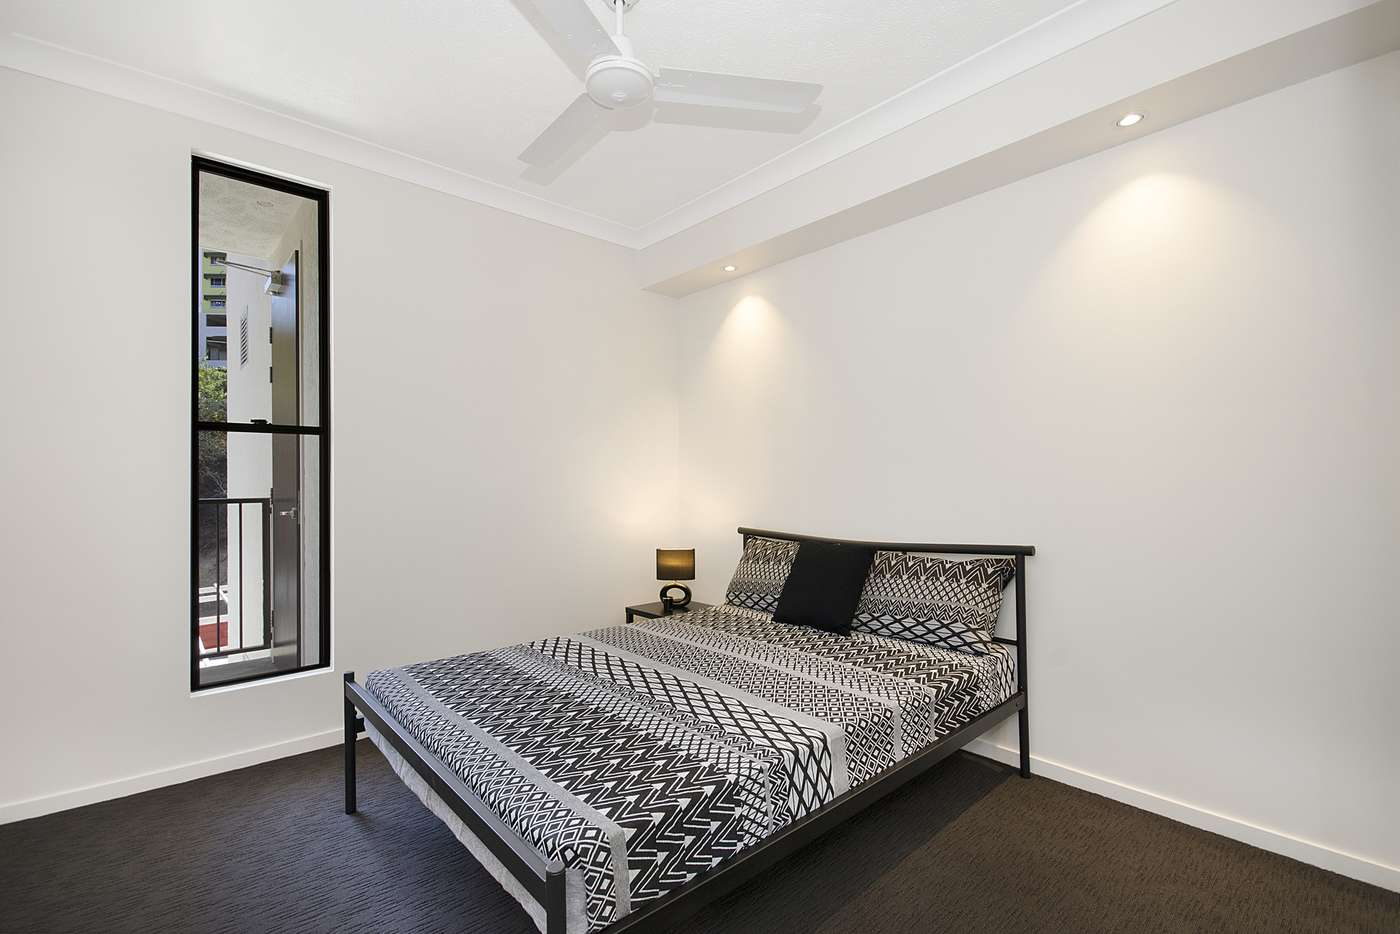 Sixth view of Homely apartment listing, 25/23 Melton Terrace, Townsville City QLD 4810